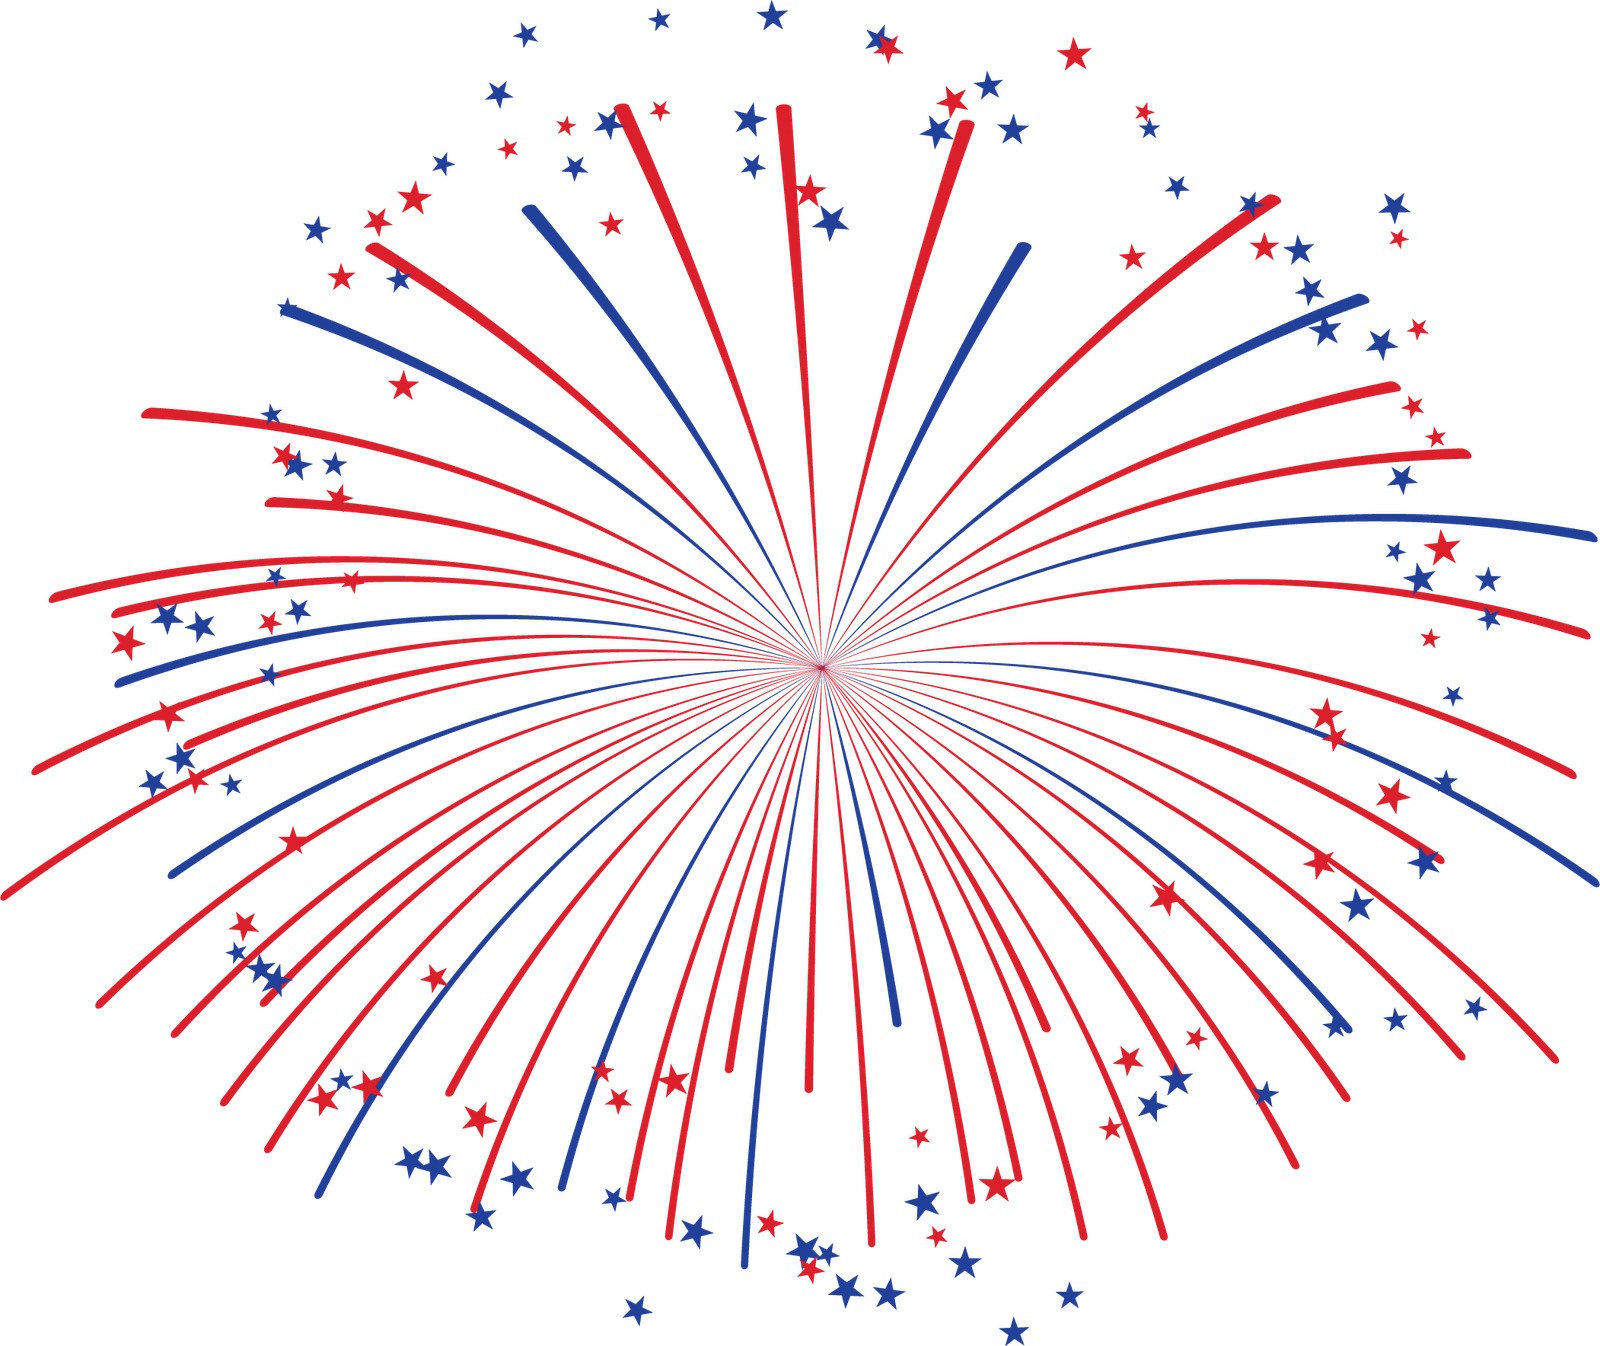 Red White And Blue Fireworks Png & Free Red White And Blue.